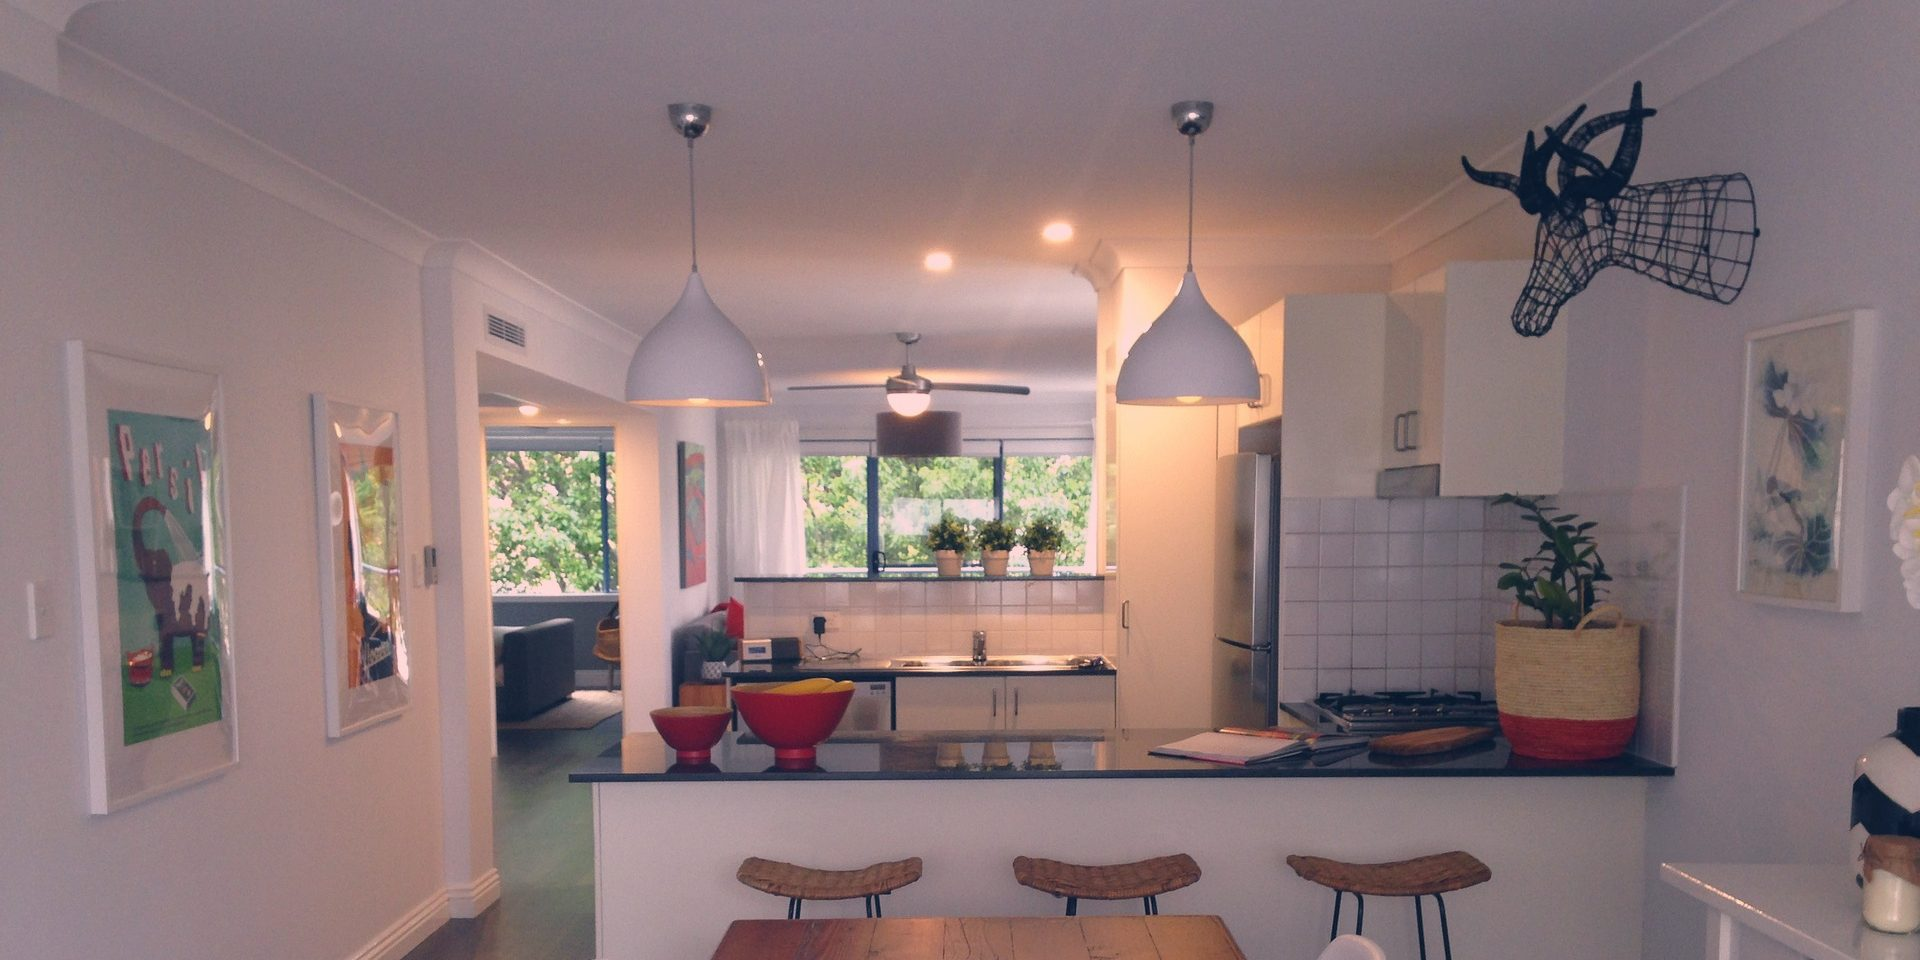 tips to replace recessed light with